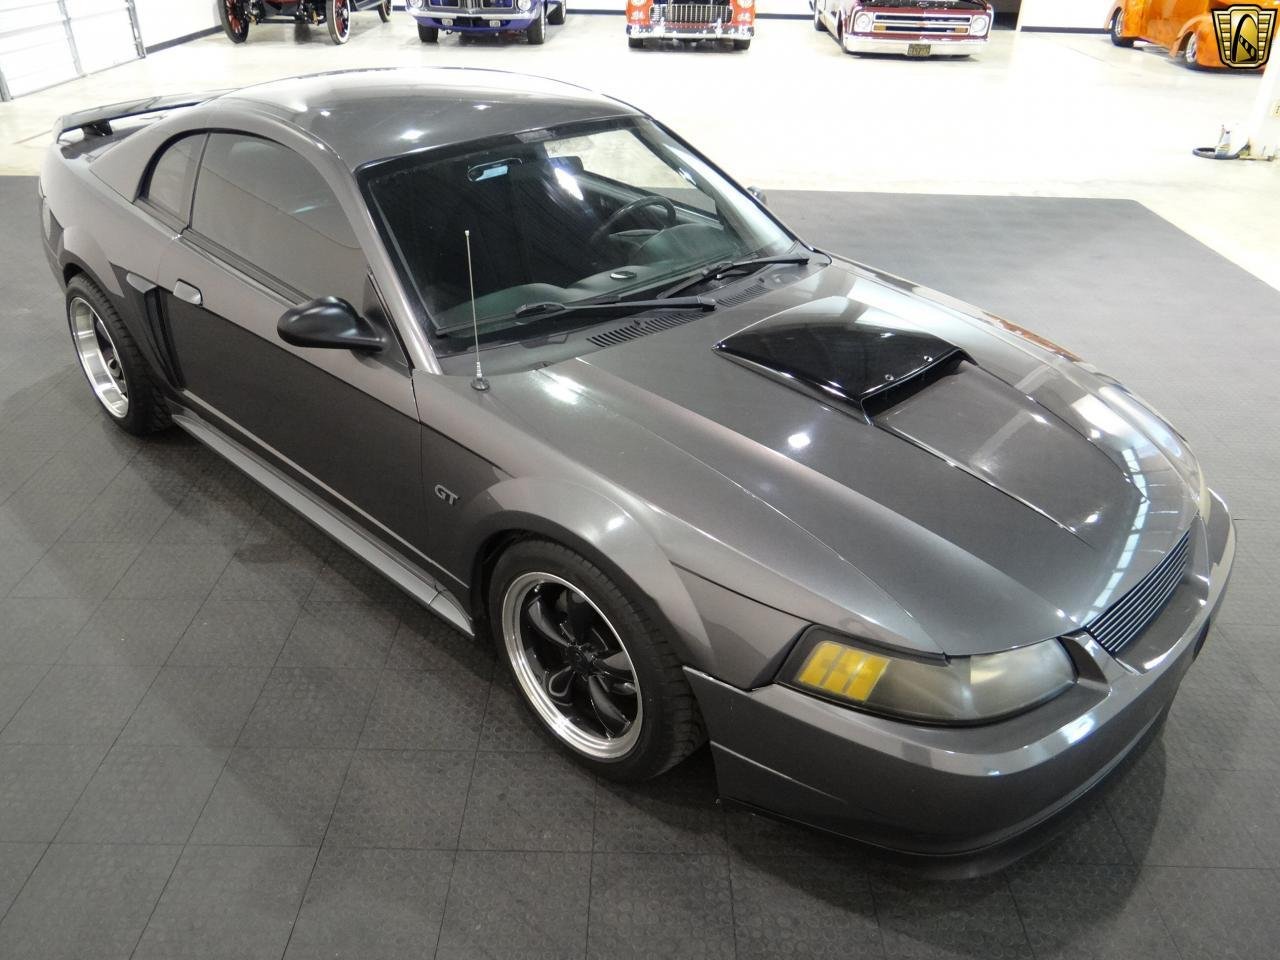 Large Picture of 2003 Mustang located in Indiana Offered by Gateway Classic Cars - Indianapolis - KE78